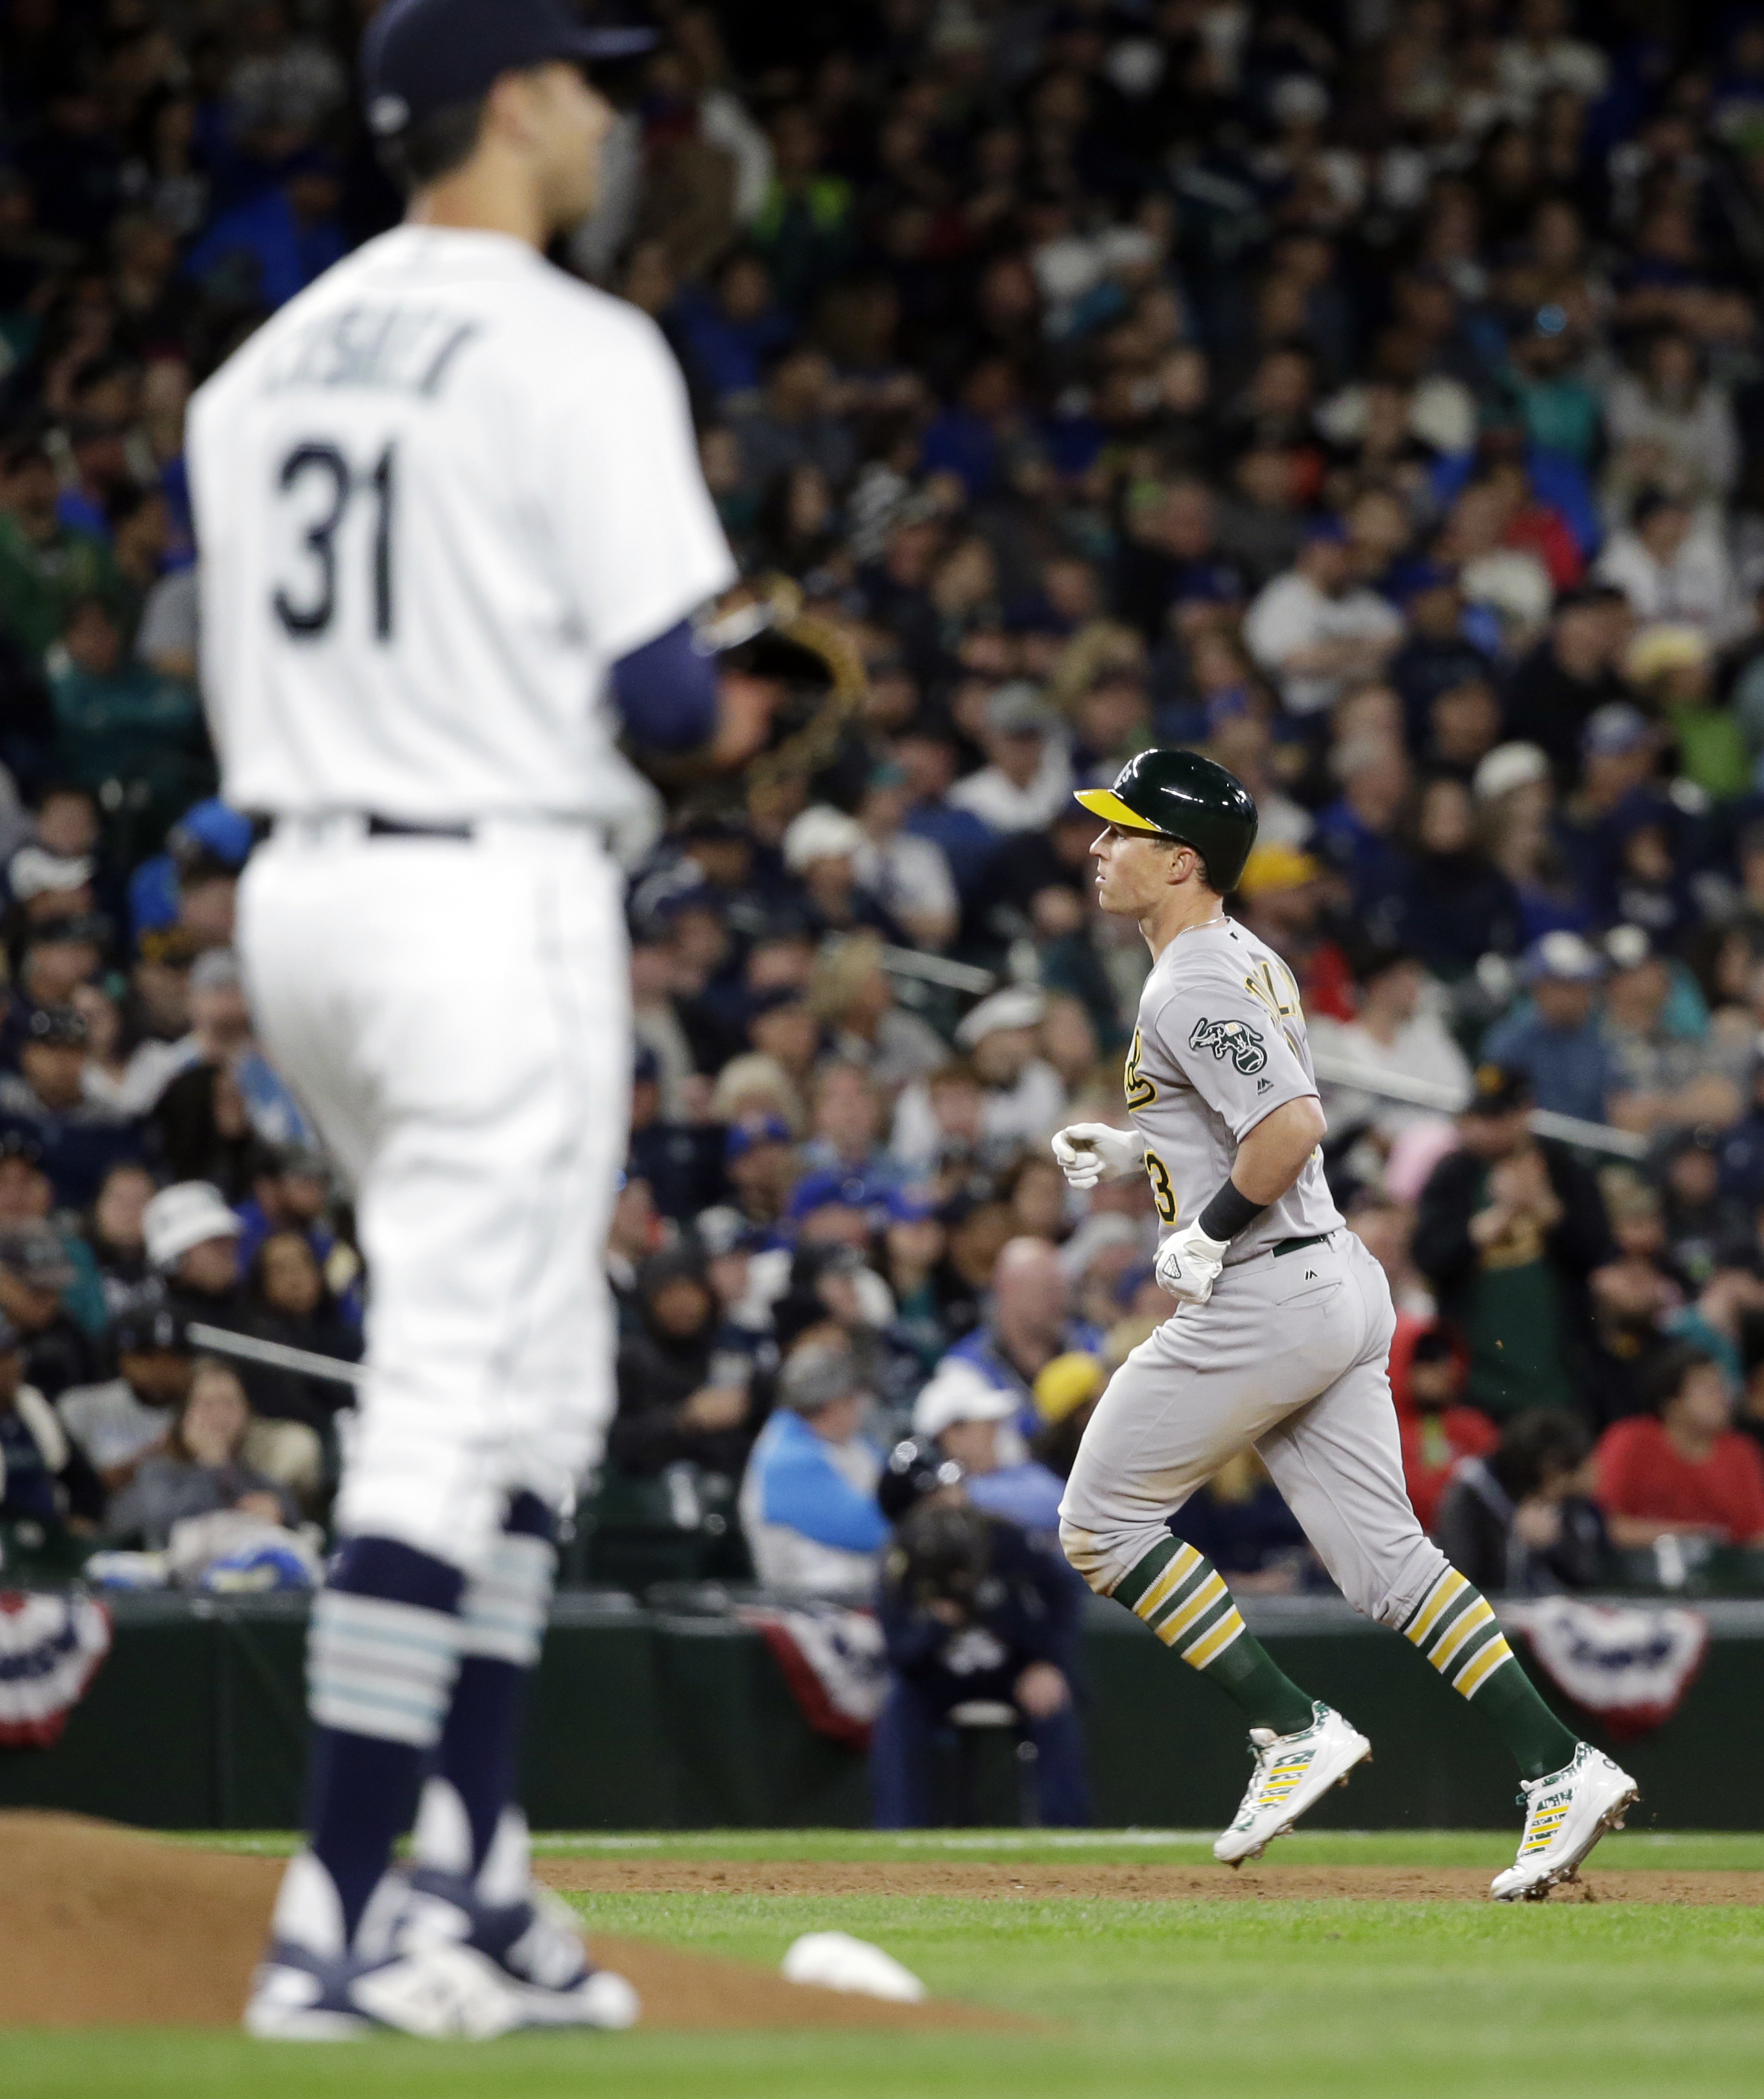 Seattle Mariners relief pitcher Steve Cishek waits as Oakland Athletics' Chris Coghlan rounds the bases on his home run during the ninth inning of a baseball game Friday, April 8, 2016, in Seattle. (AP Photo/Elaine Thompson)